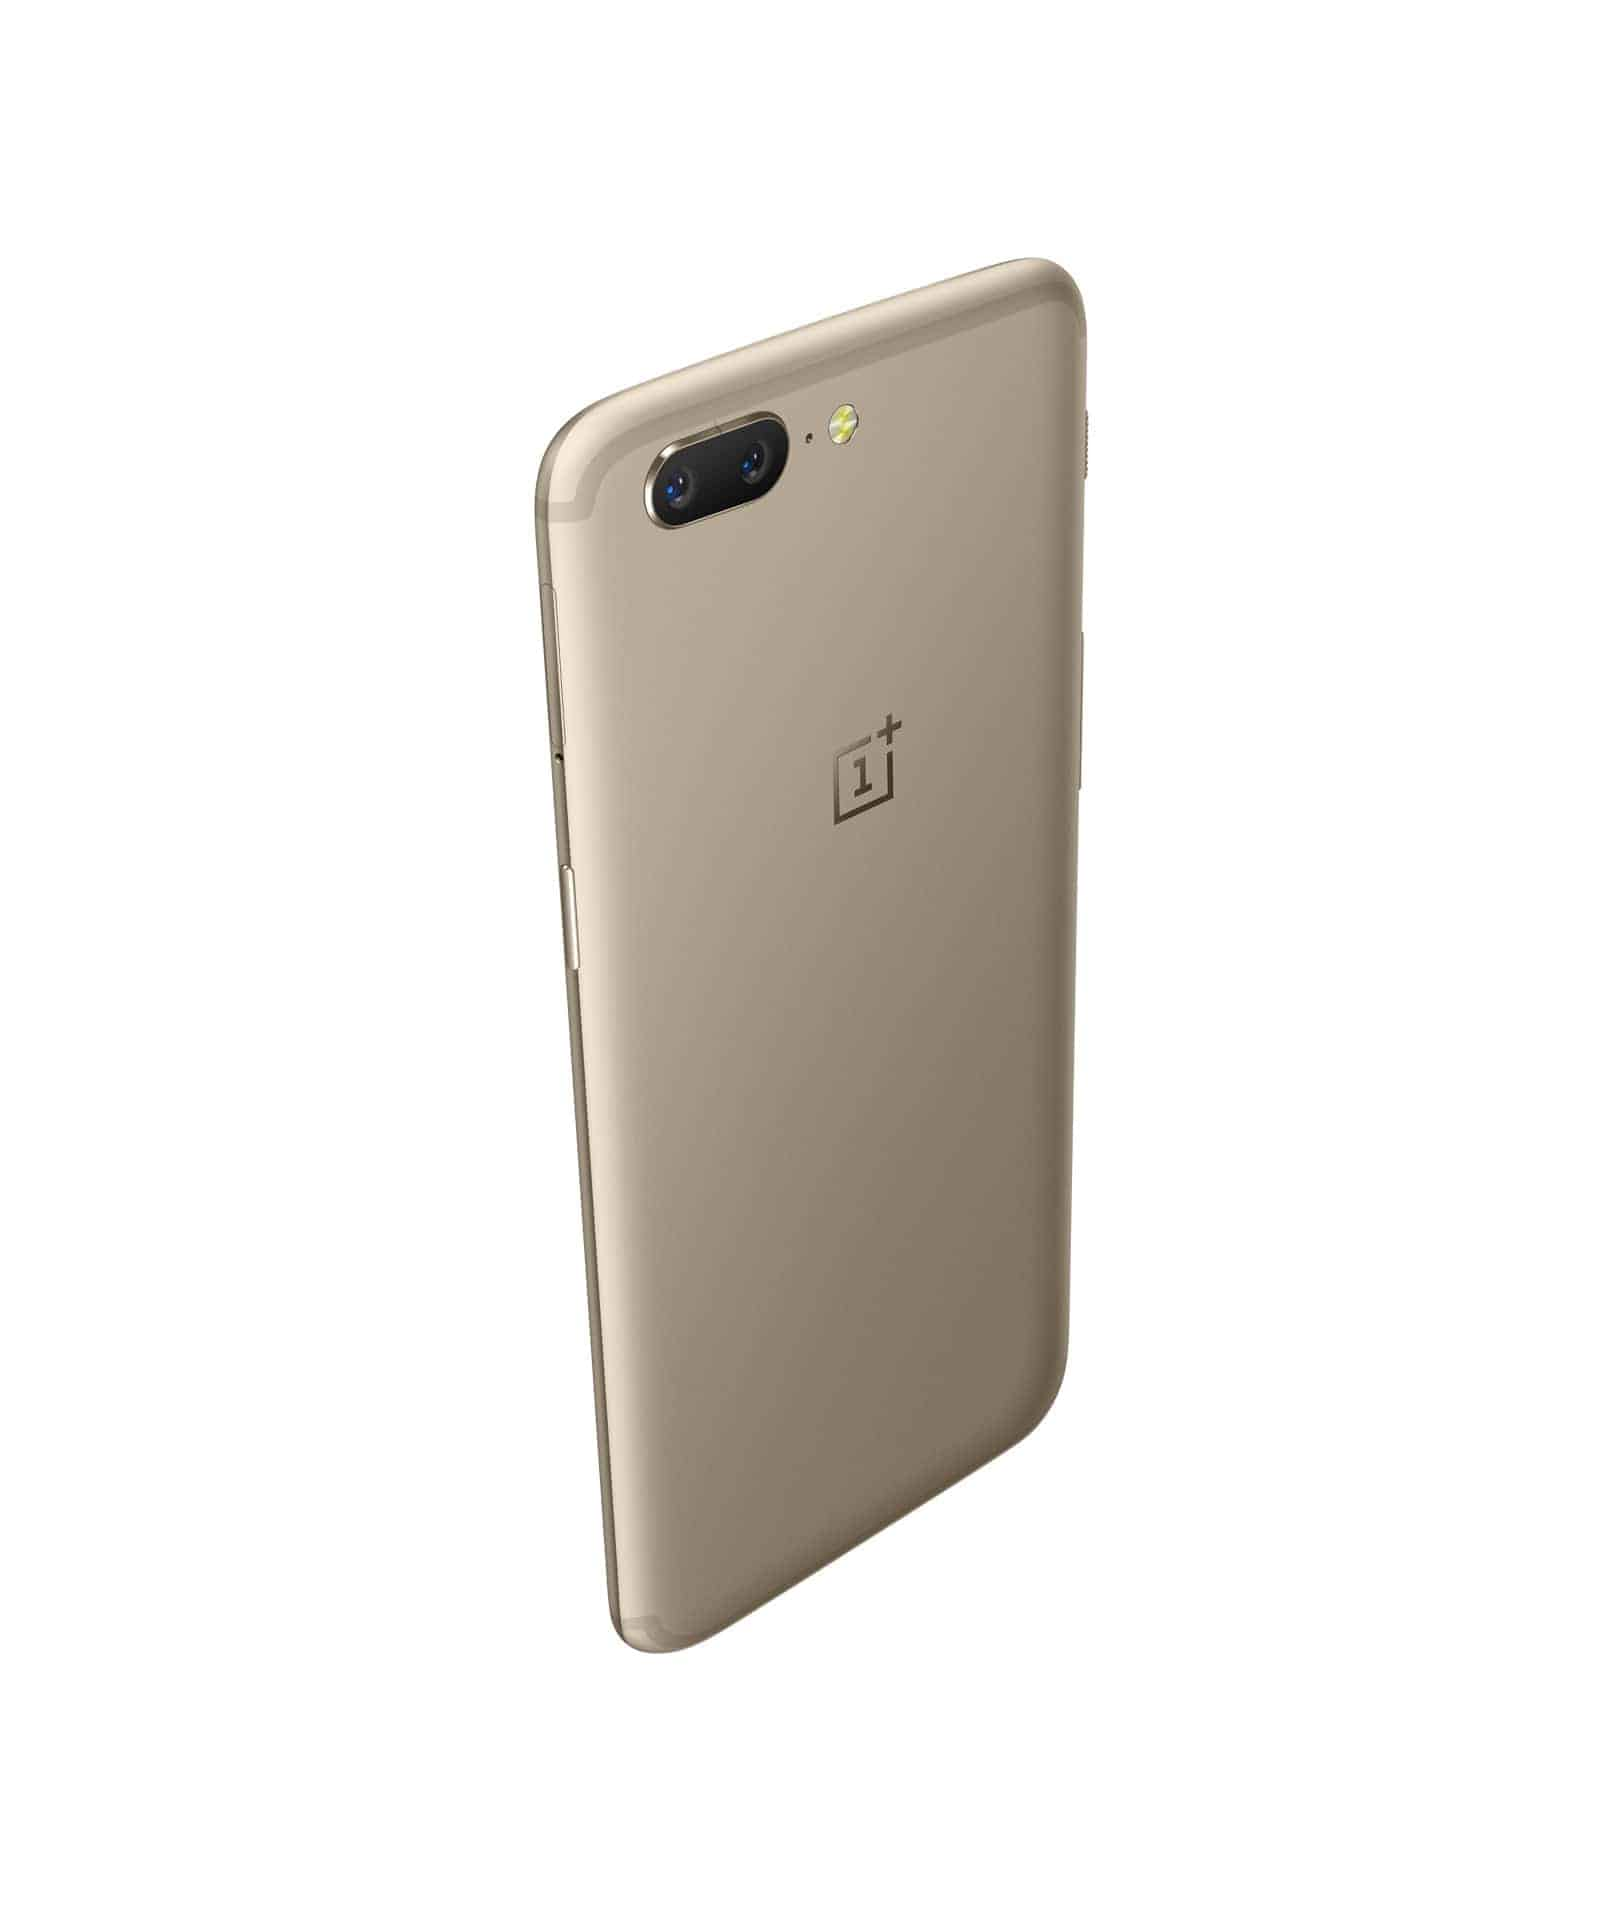 OnePlus 5 Soft Gold 3